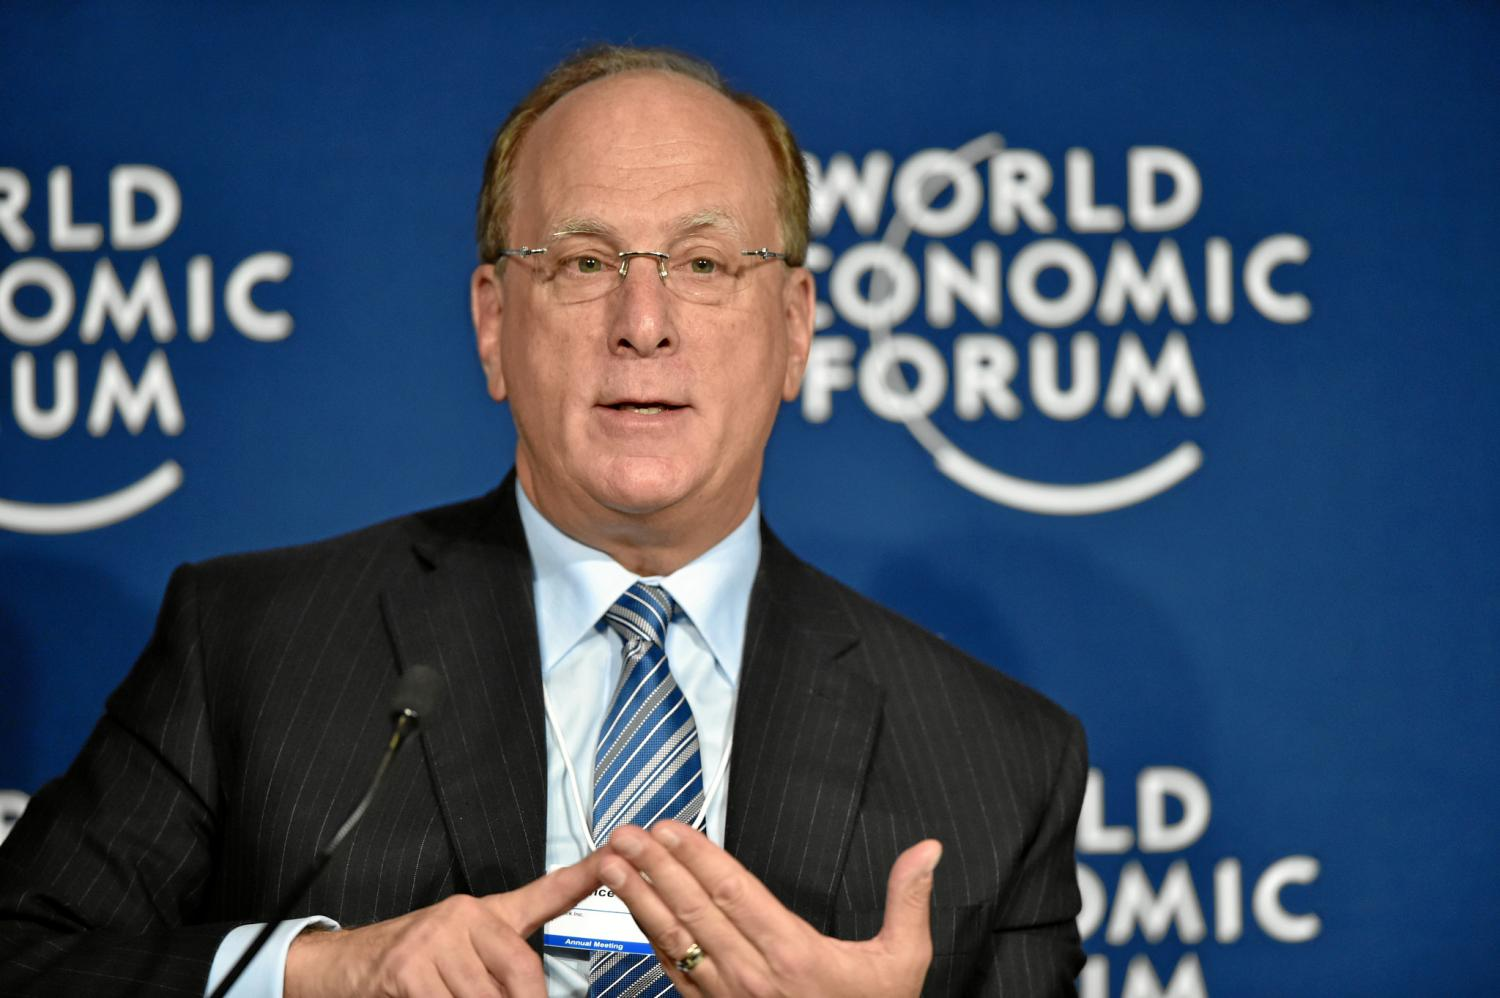 Larry Fink is in the news again, urging business to step into a leadership vacuum in a divided world.